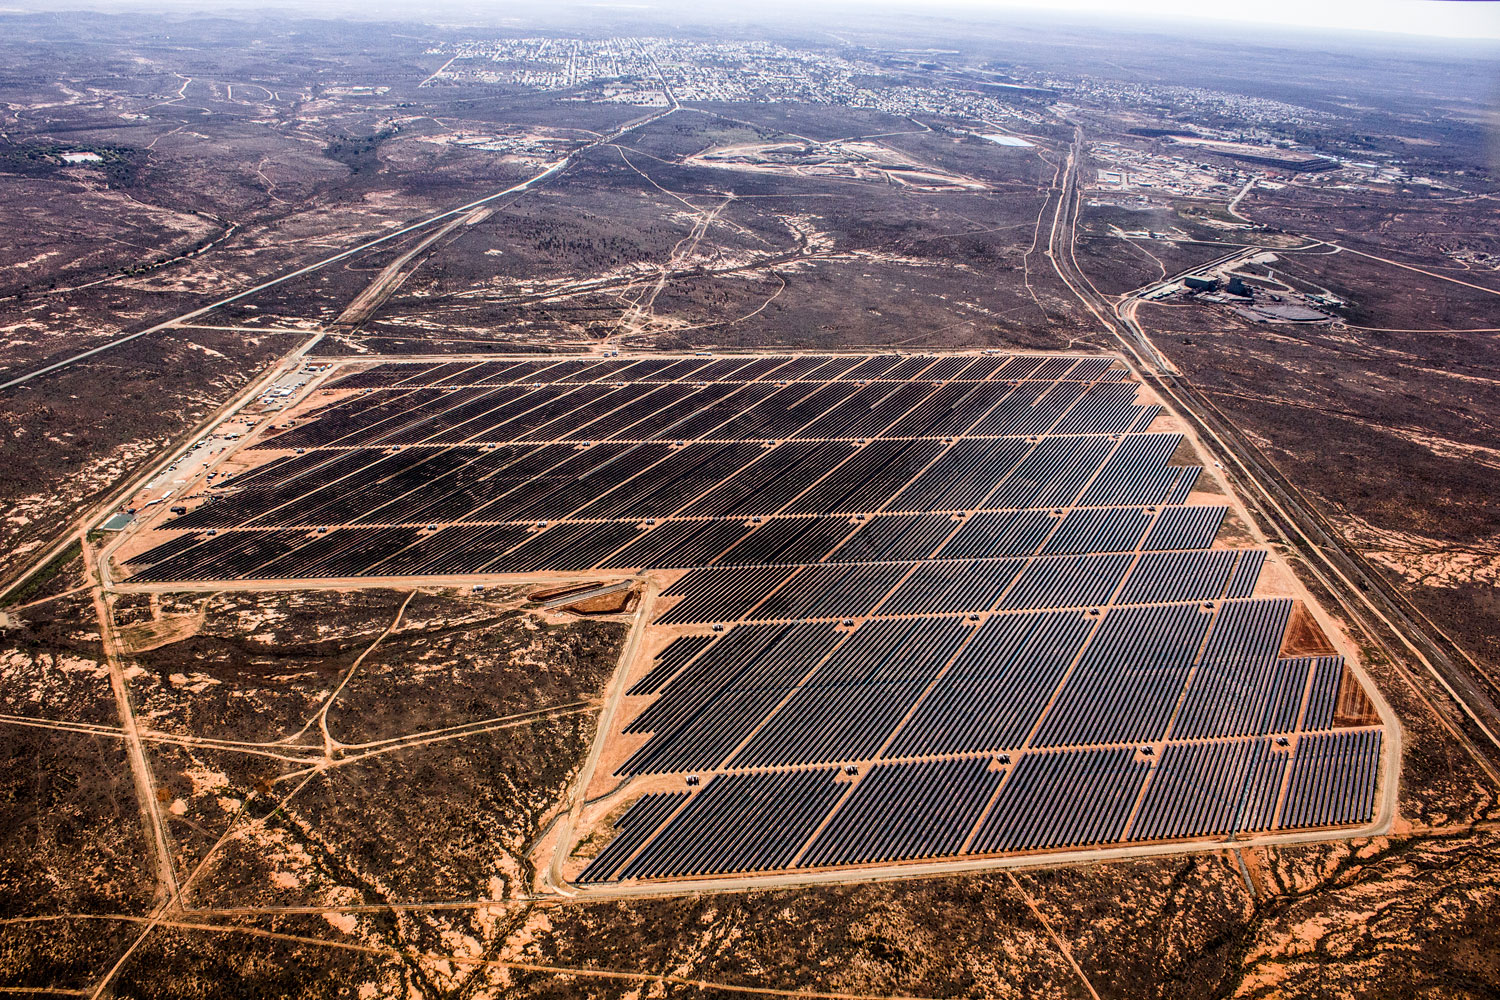 Achieving the RET would require more than 23.5% of Australia's electricity being derived from renewable sources by 2020. Credit: Broken Hill